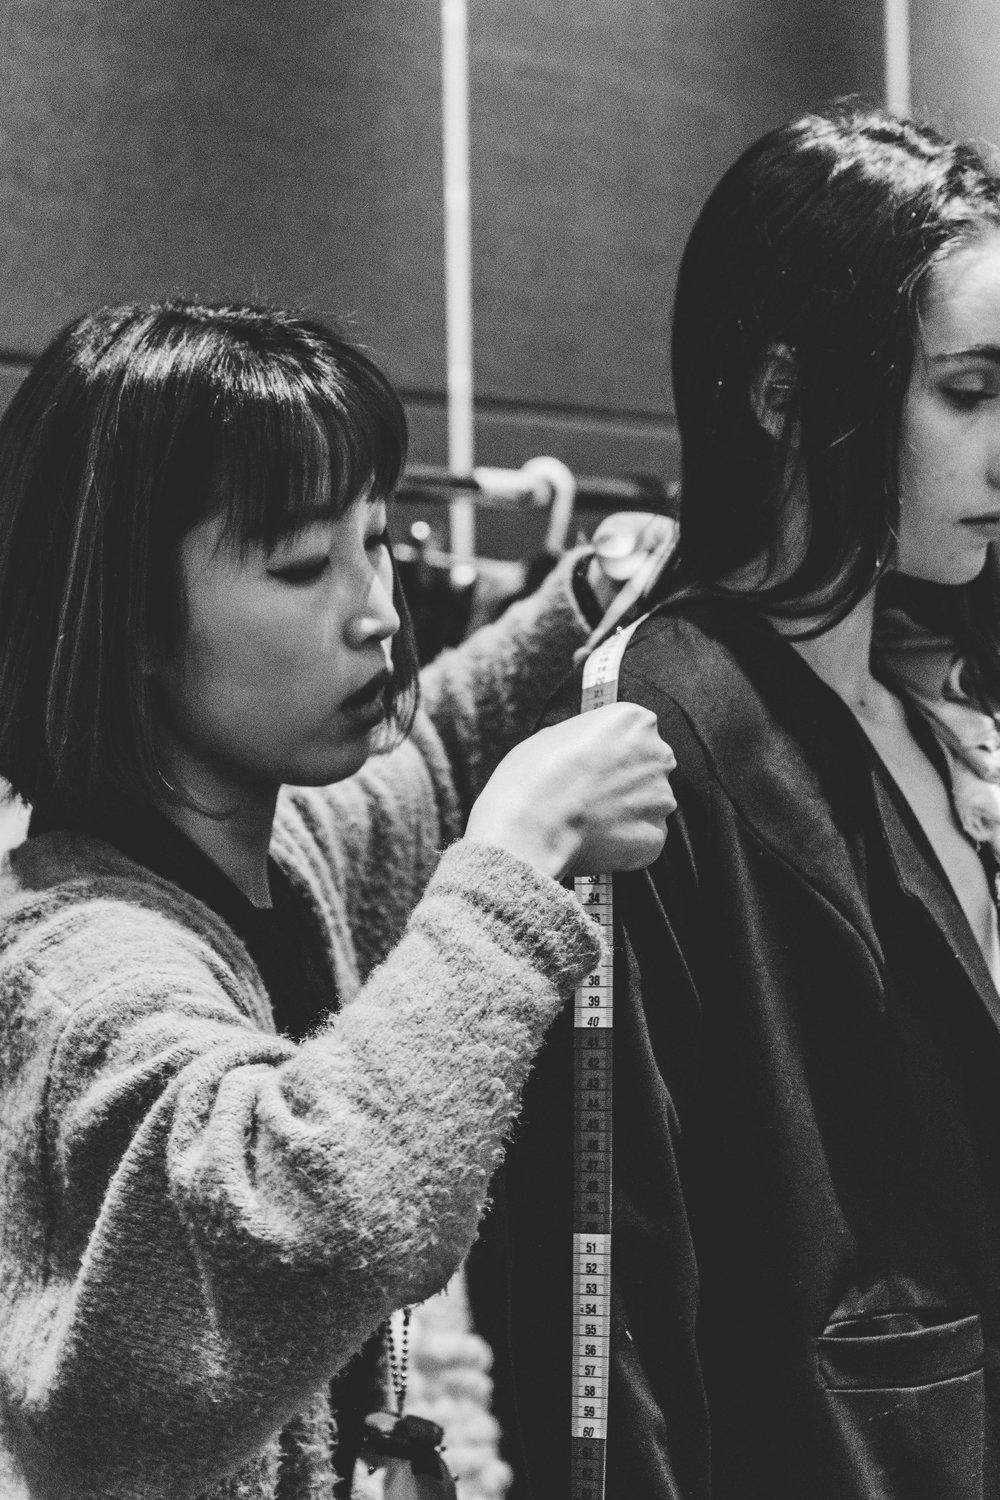 Designer making final measurements to her garments during final fittings. TPFF, Hana Photography, 2017